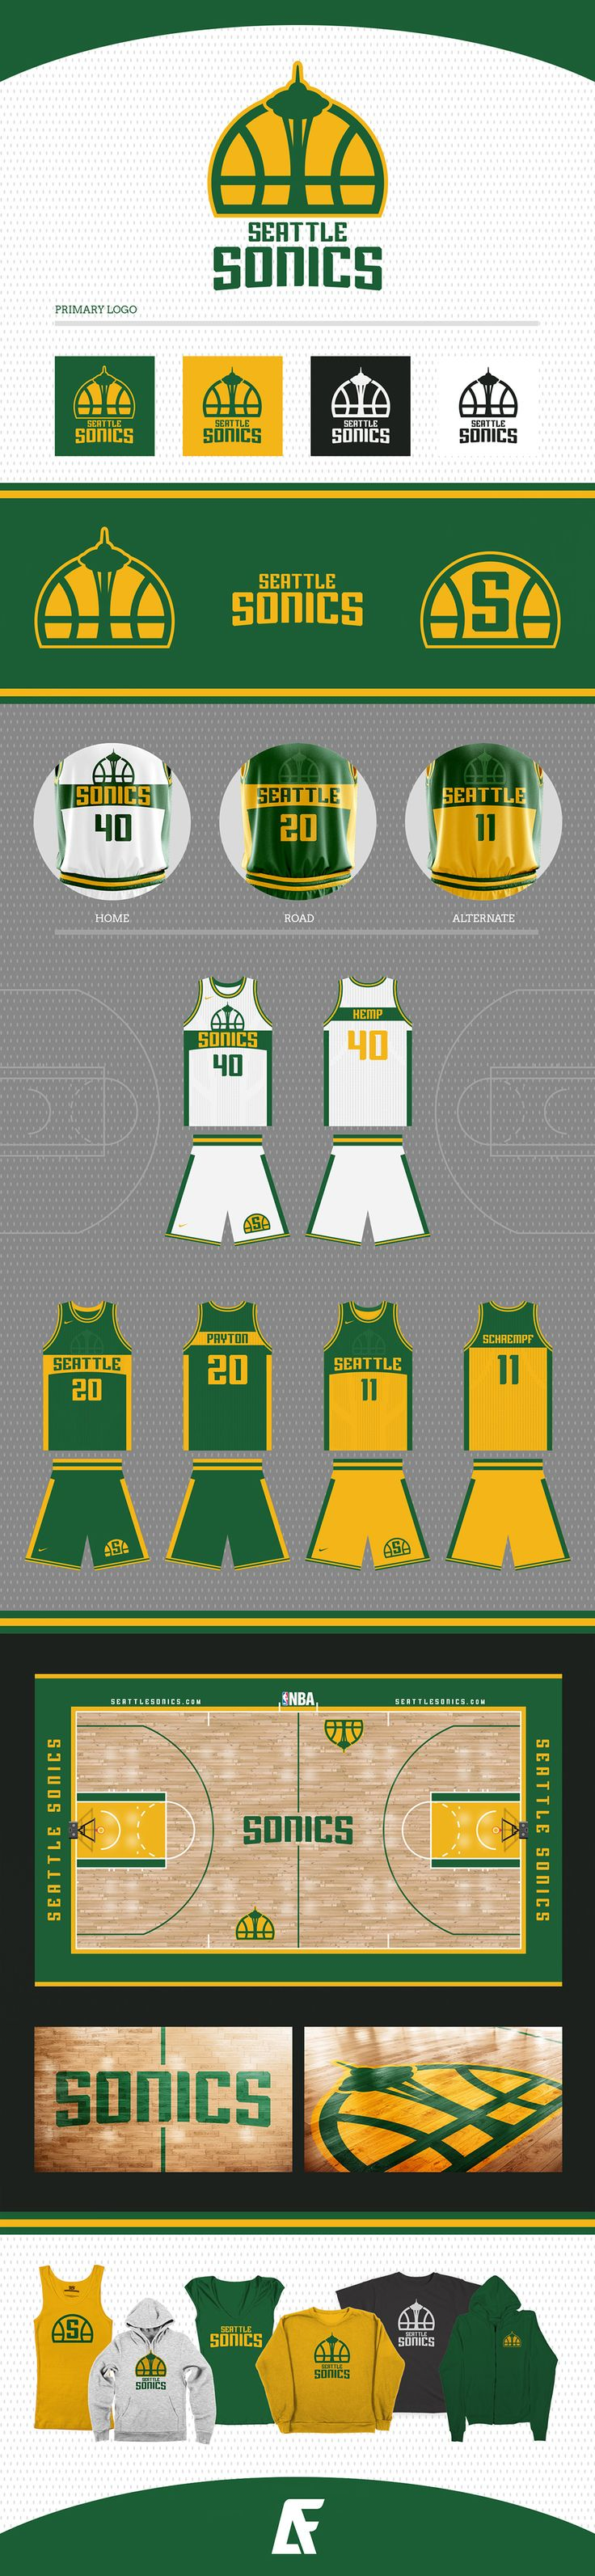 Seattle Sonics Identity concept by Addison Foote